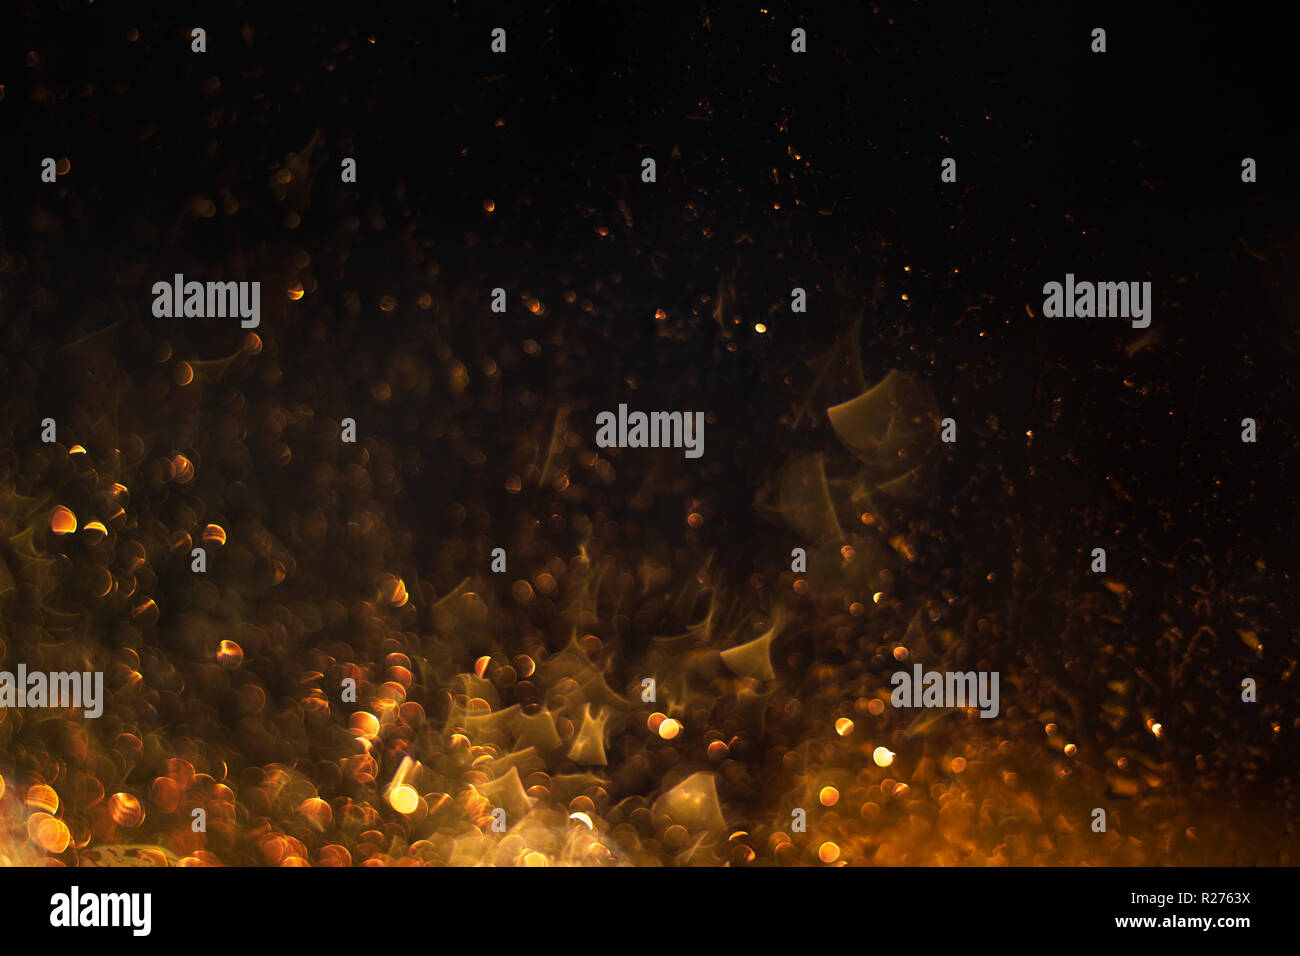 fire sparkles glowing in the darkness Stock Photo